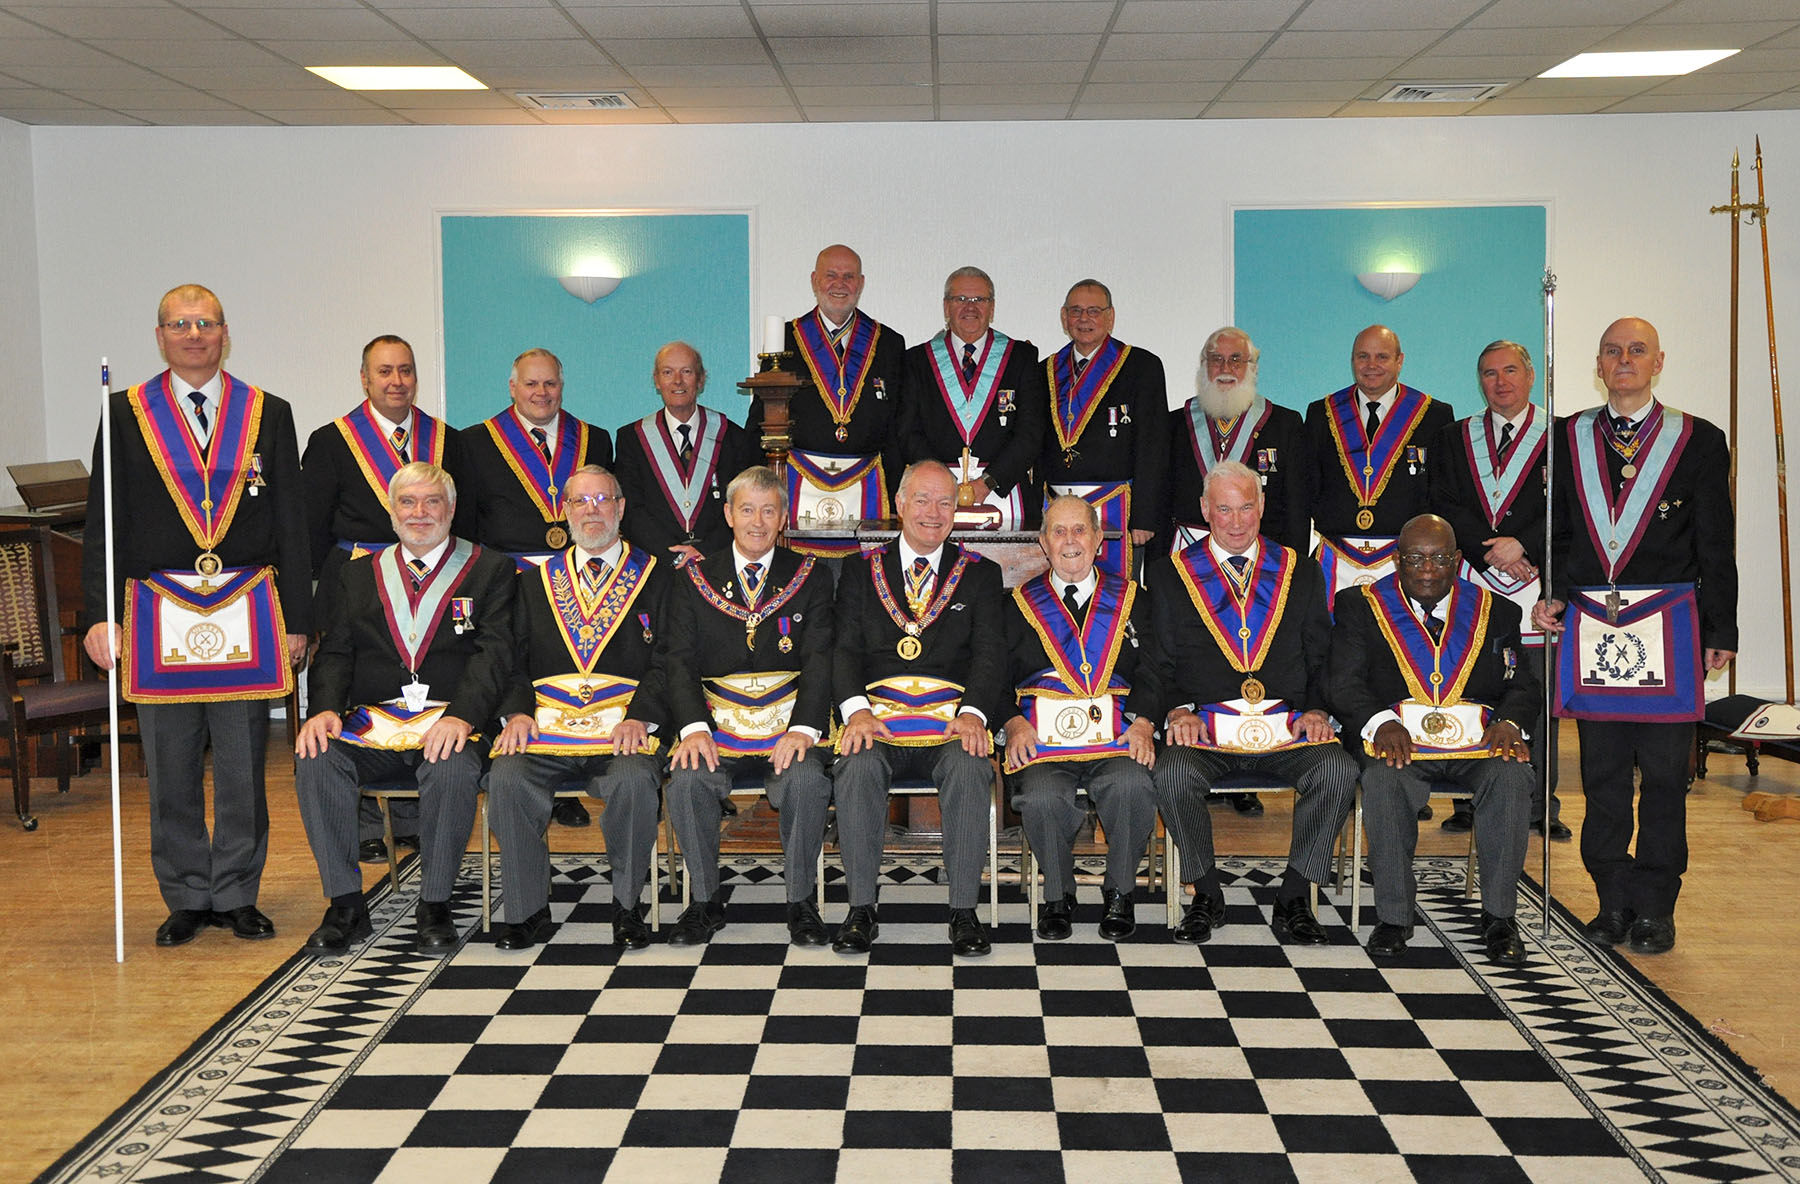 Executive visit to Redhill Ram and Mark Lodges